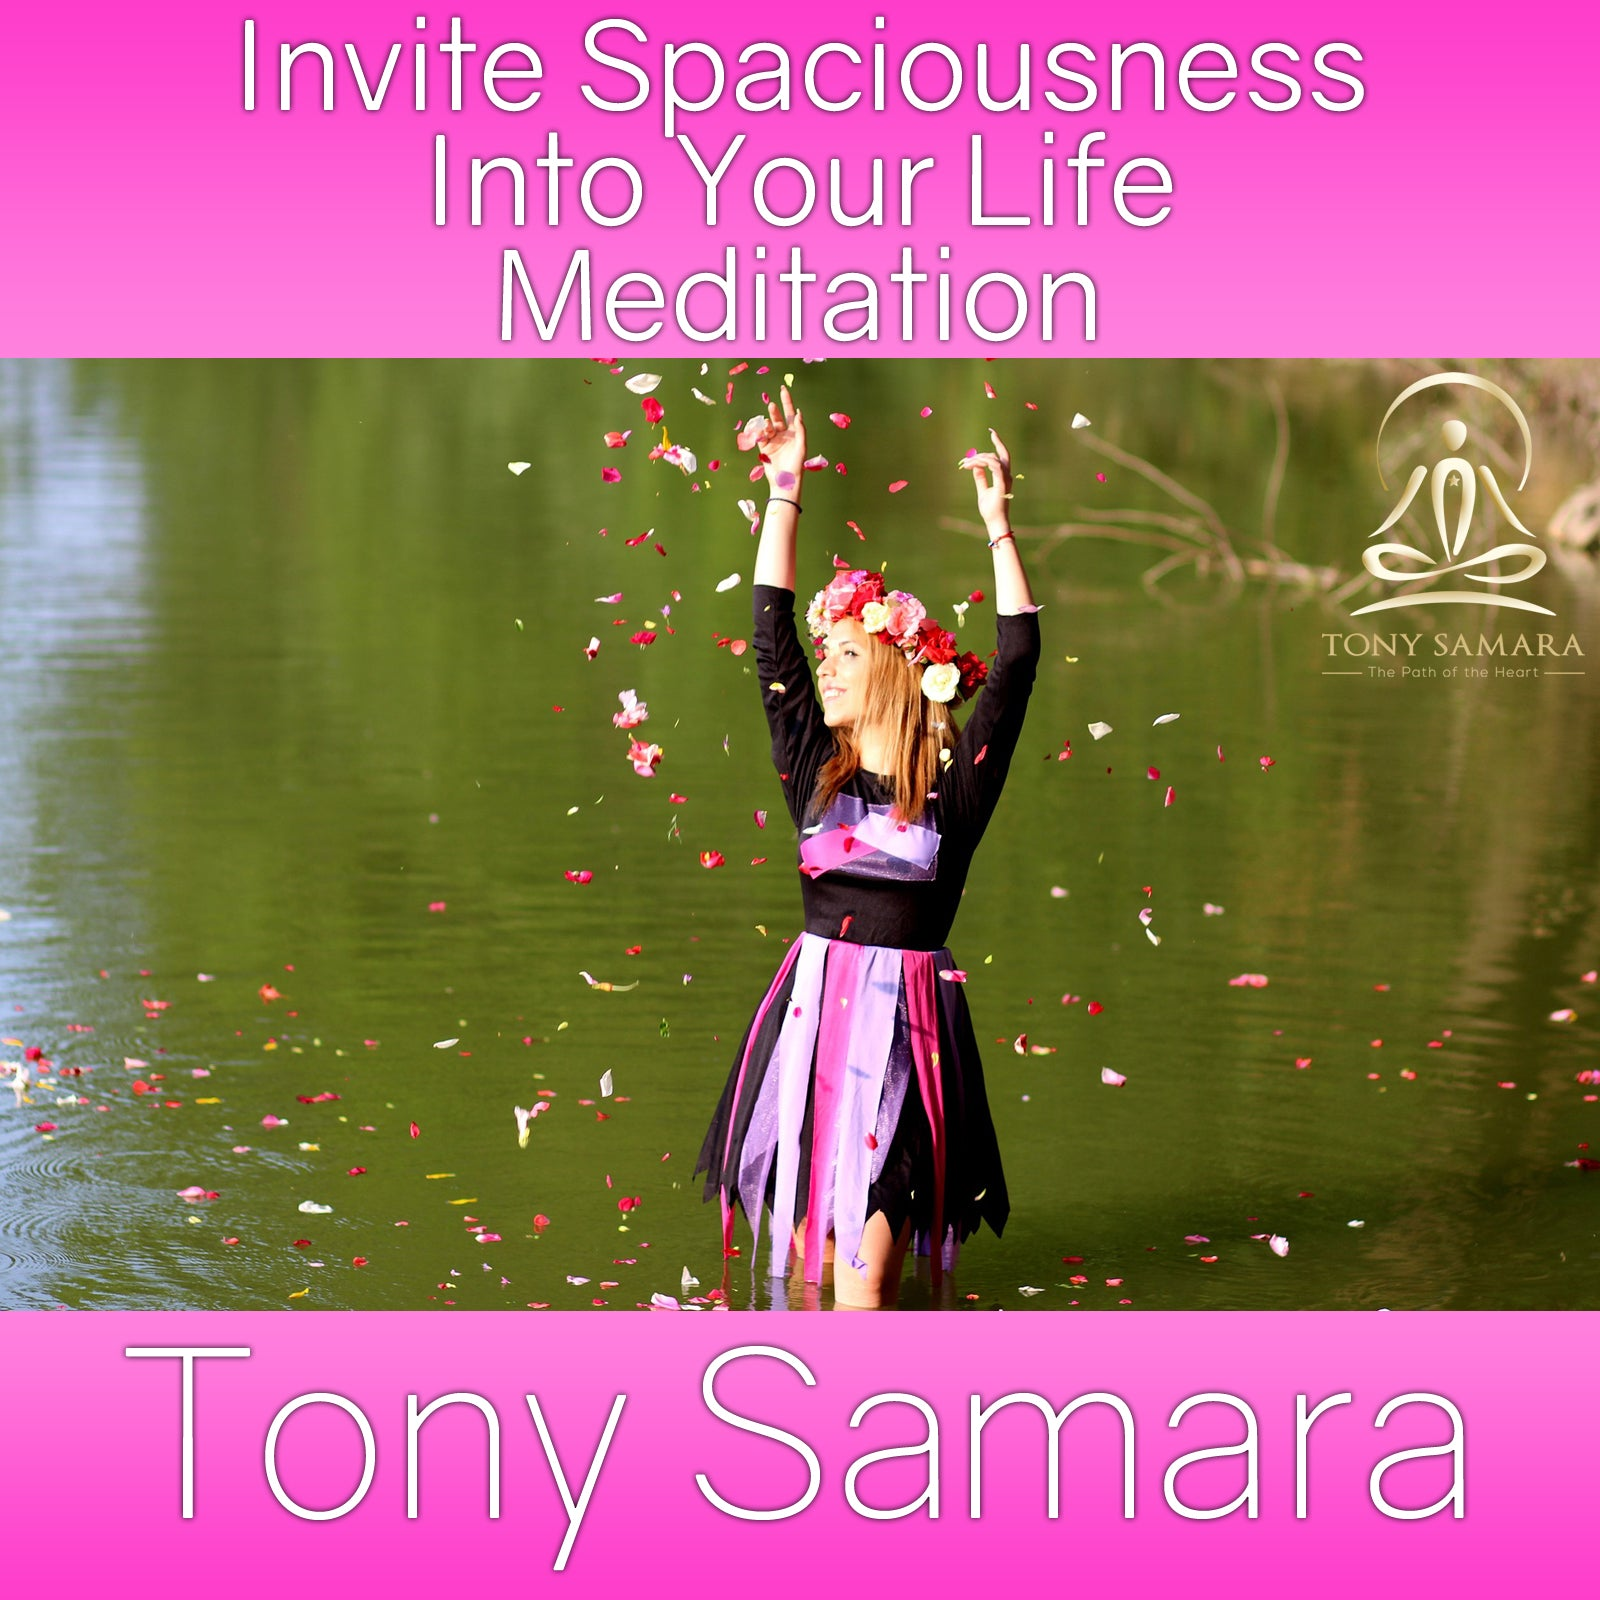 Invite Spaciousness Into Your Life Meditation (MP3 Audio Download) - Tony Samara Meditation